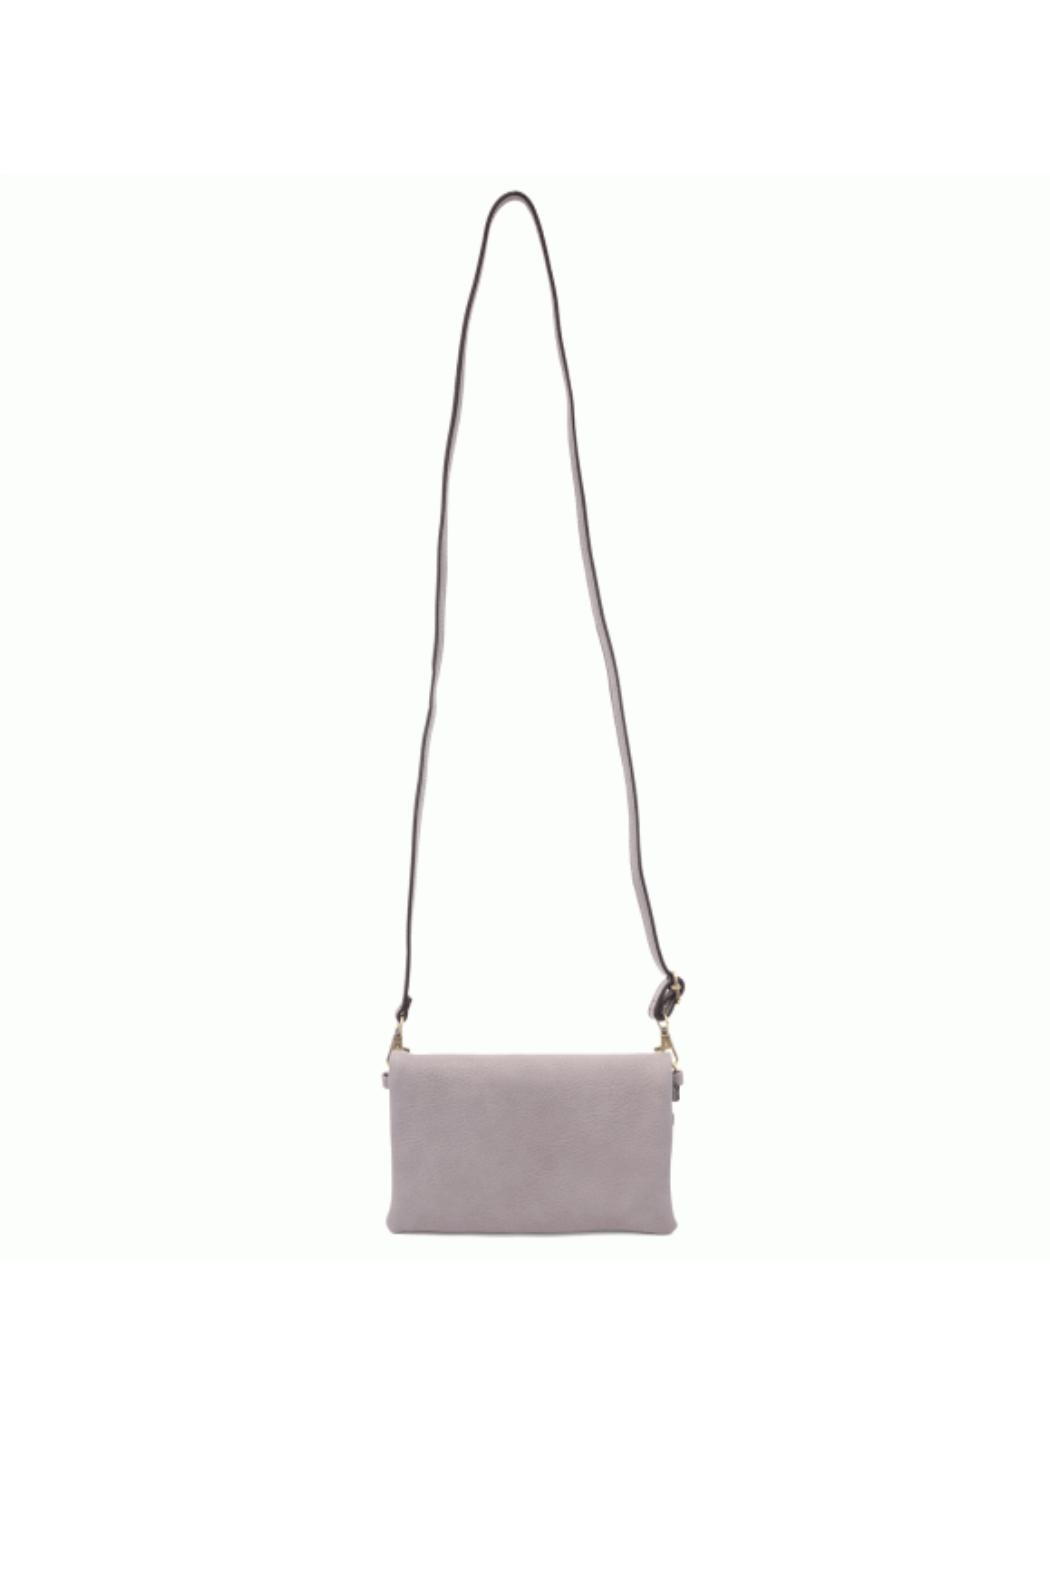 Joy Accessories Kate Crossbody - Wisteria - Back Cropped Image